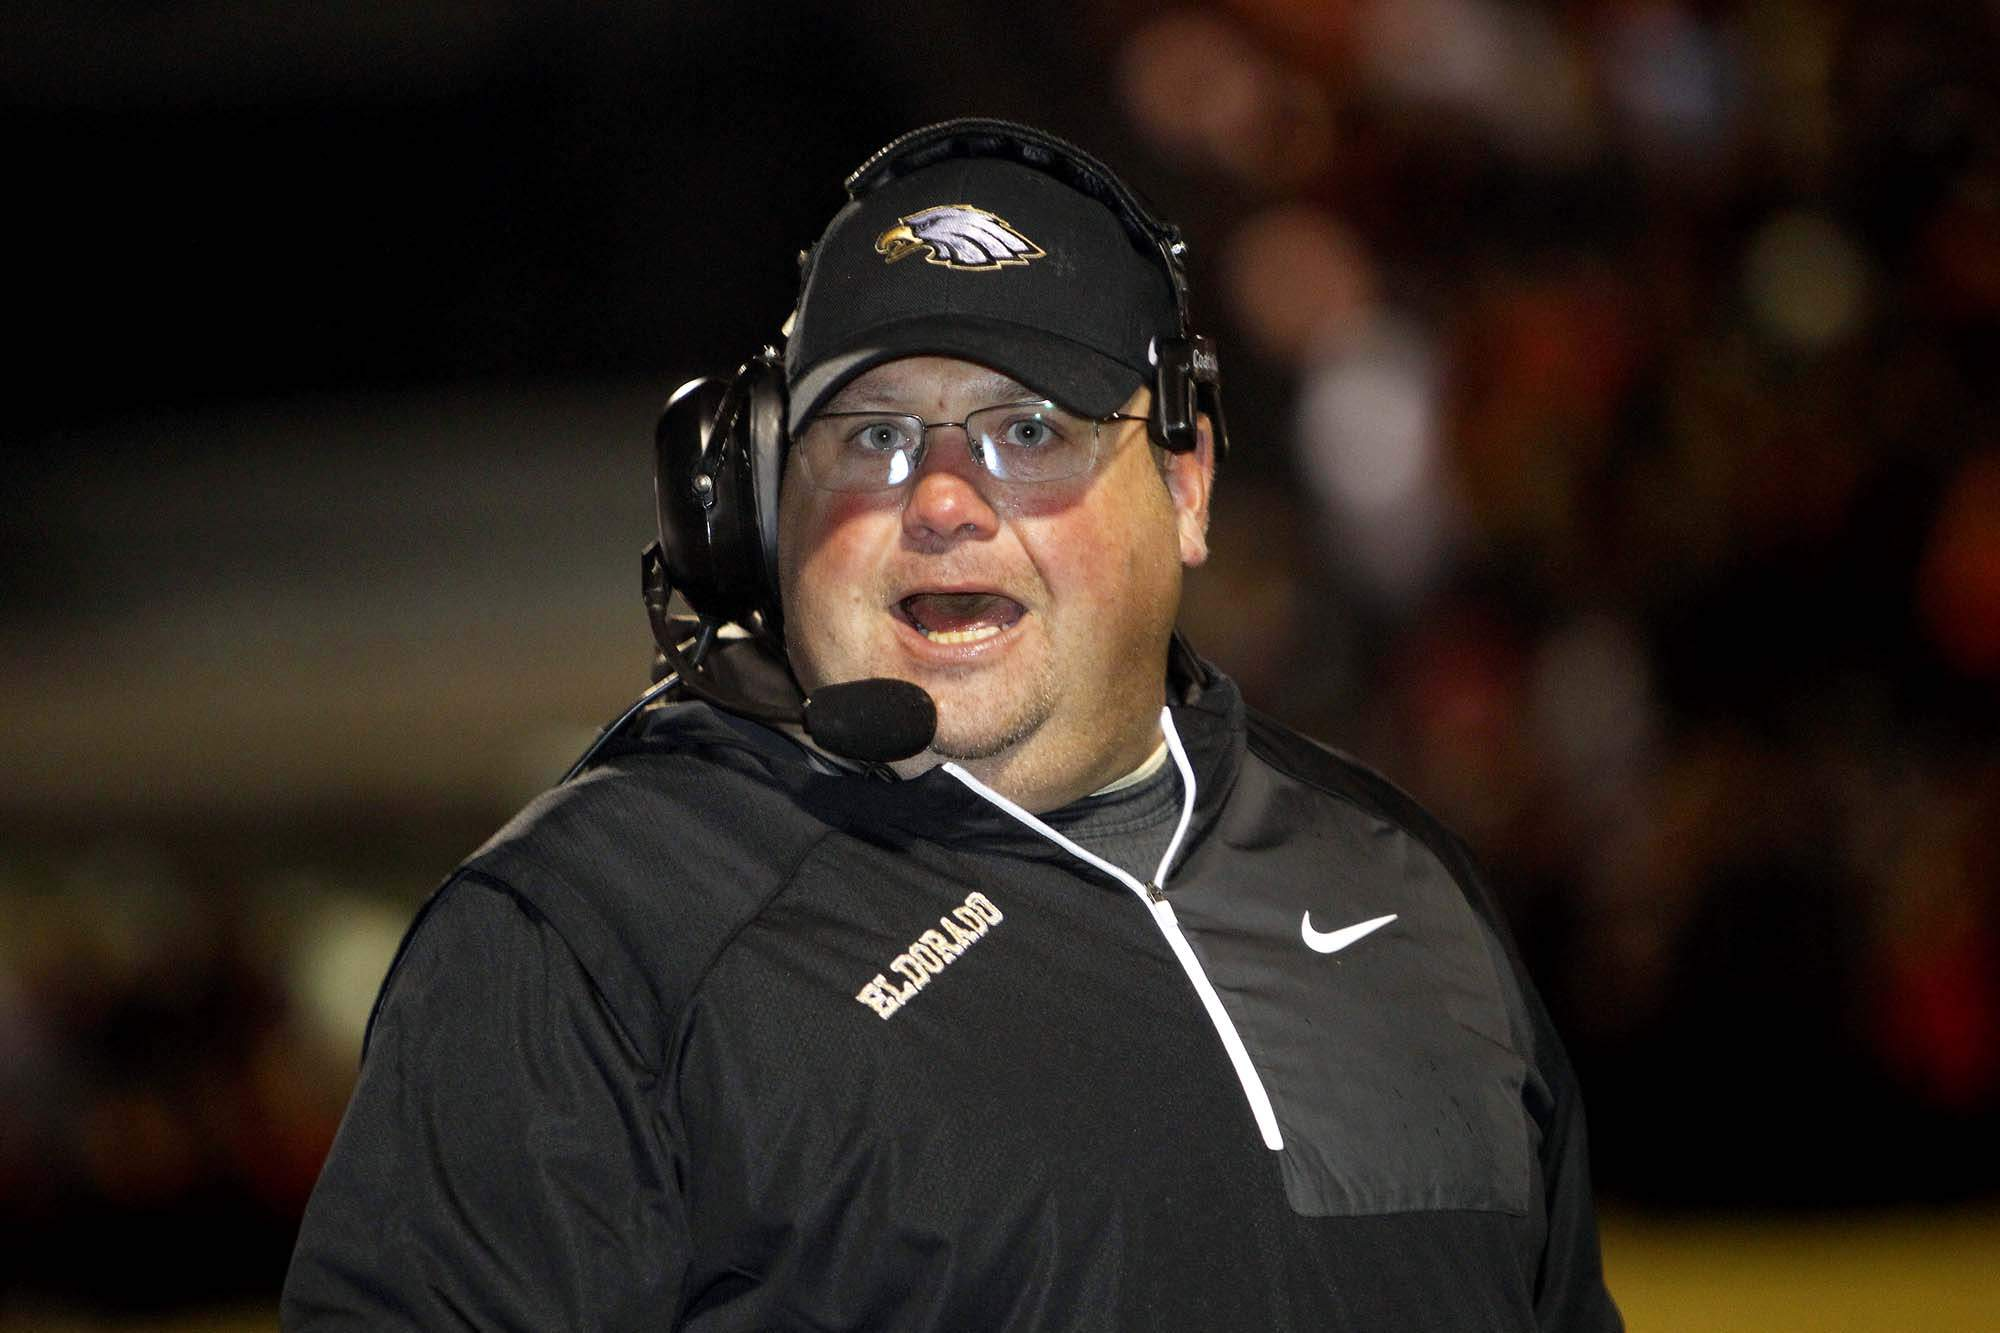 Brandon Hampton announced his resignation as head football coach at Eldorado High School Tuesday. The 1996 EHS alum will take an assistant position at Paris High School in Paris, Texas.